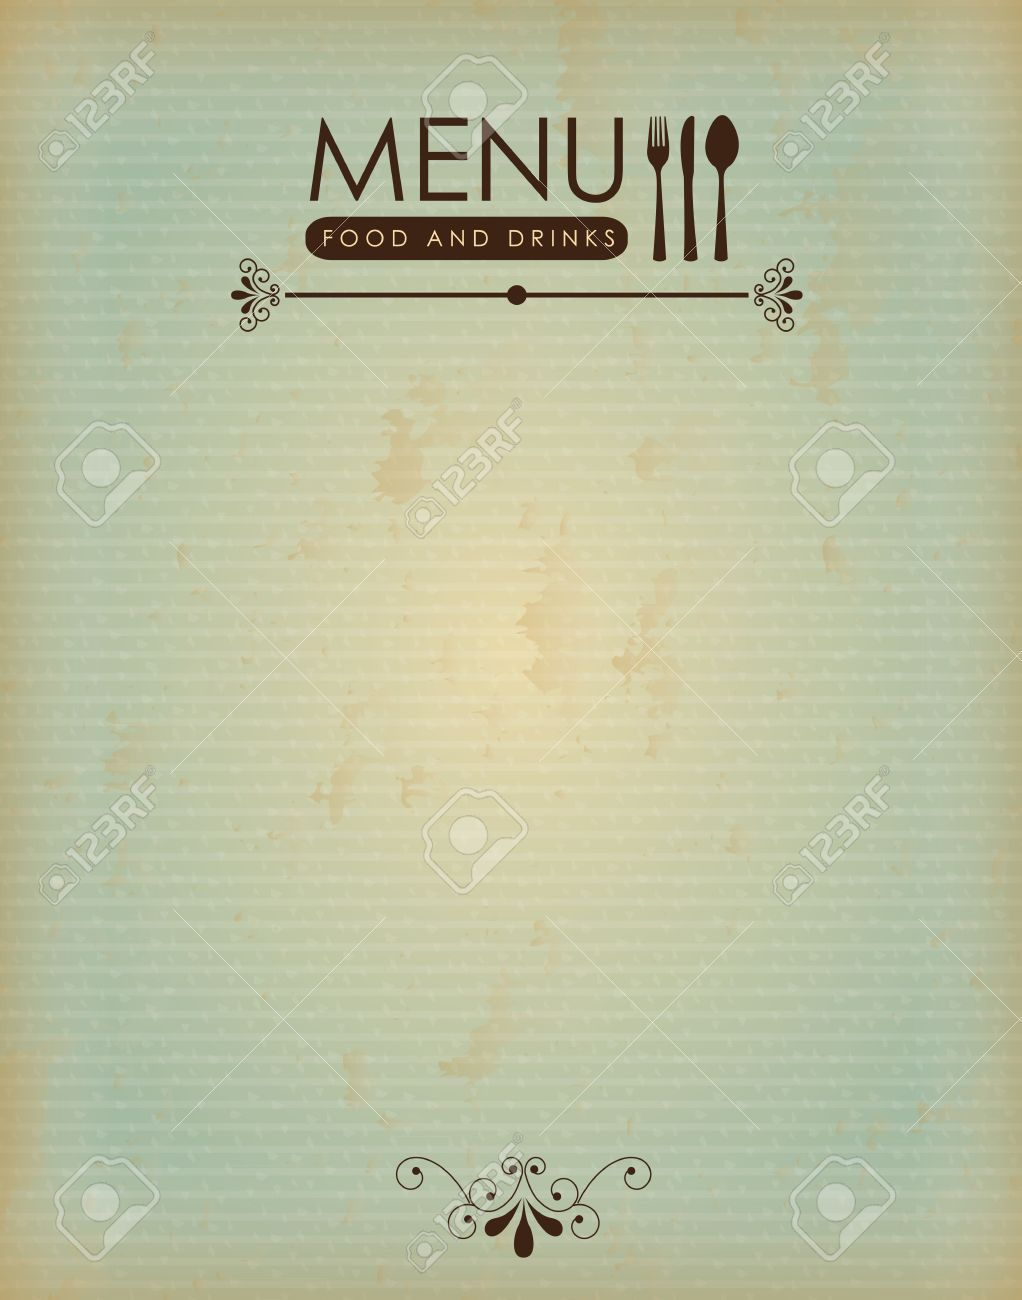 food menu over wooden background illustration royalty free cliparts